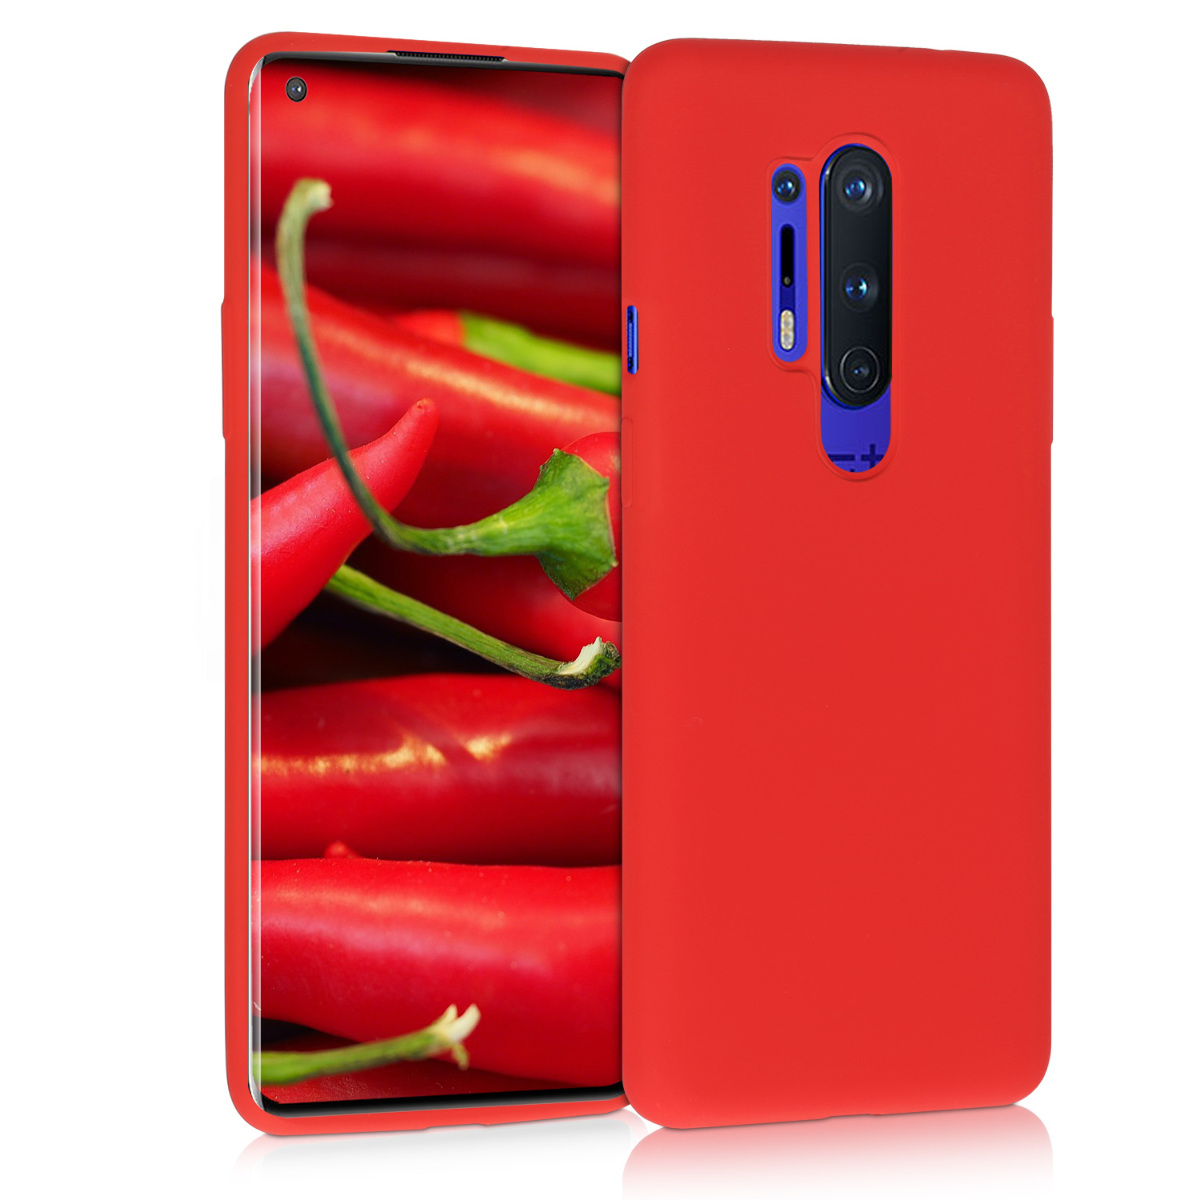 KW Θήκη Σιλικόνης OnePlus 8 Pro - Soft Flexible Rubber Protective Cover - Red (51714.09)